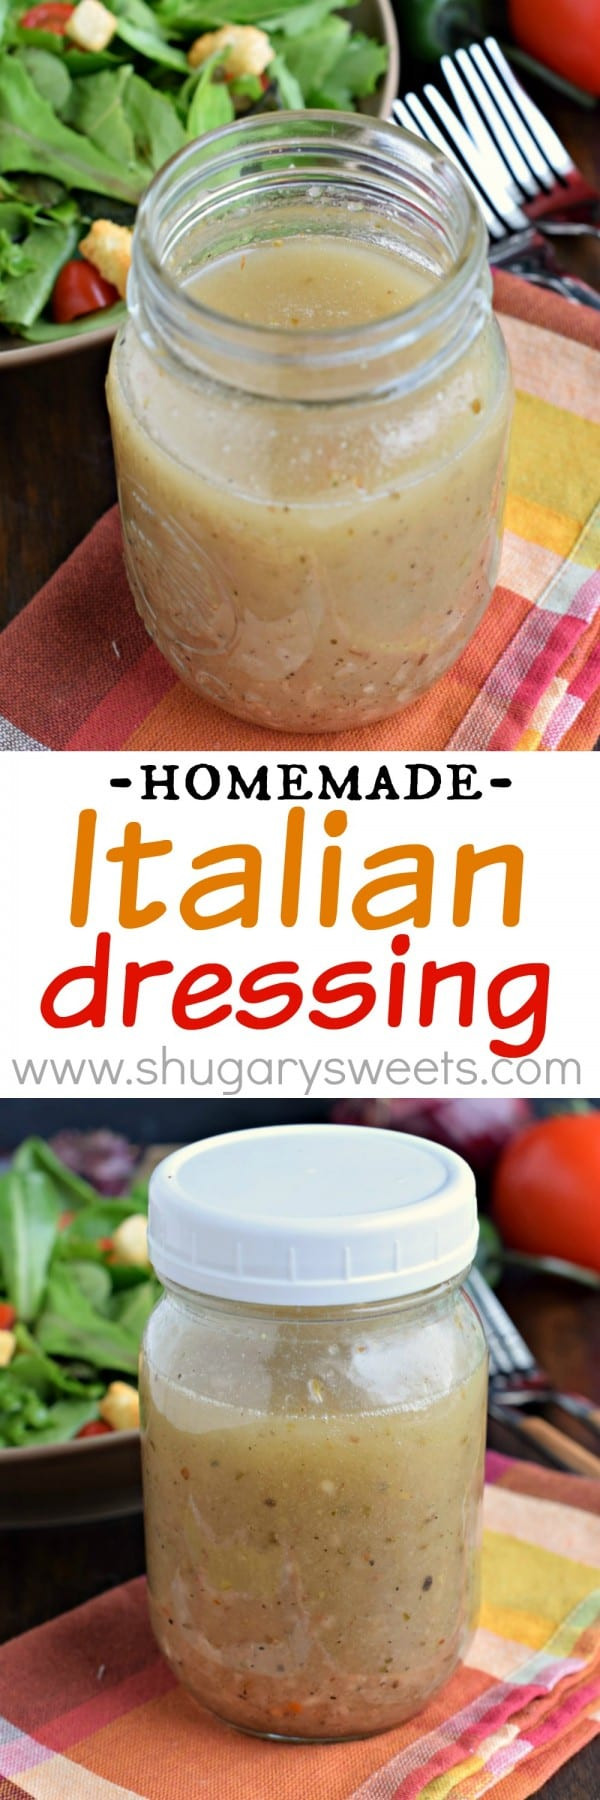 Best ideas about DIY Italian Dressing . Save or Pin Homemade Italian Dressing Shugary Sweets Now.